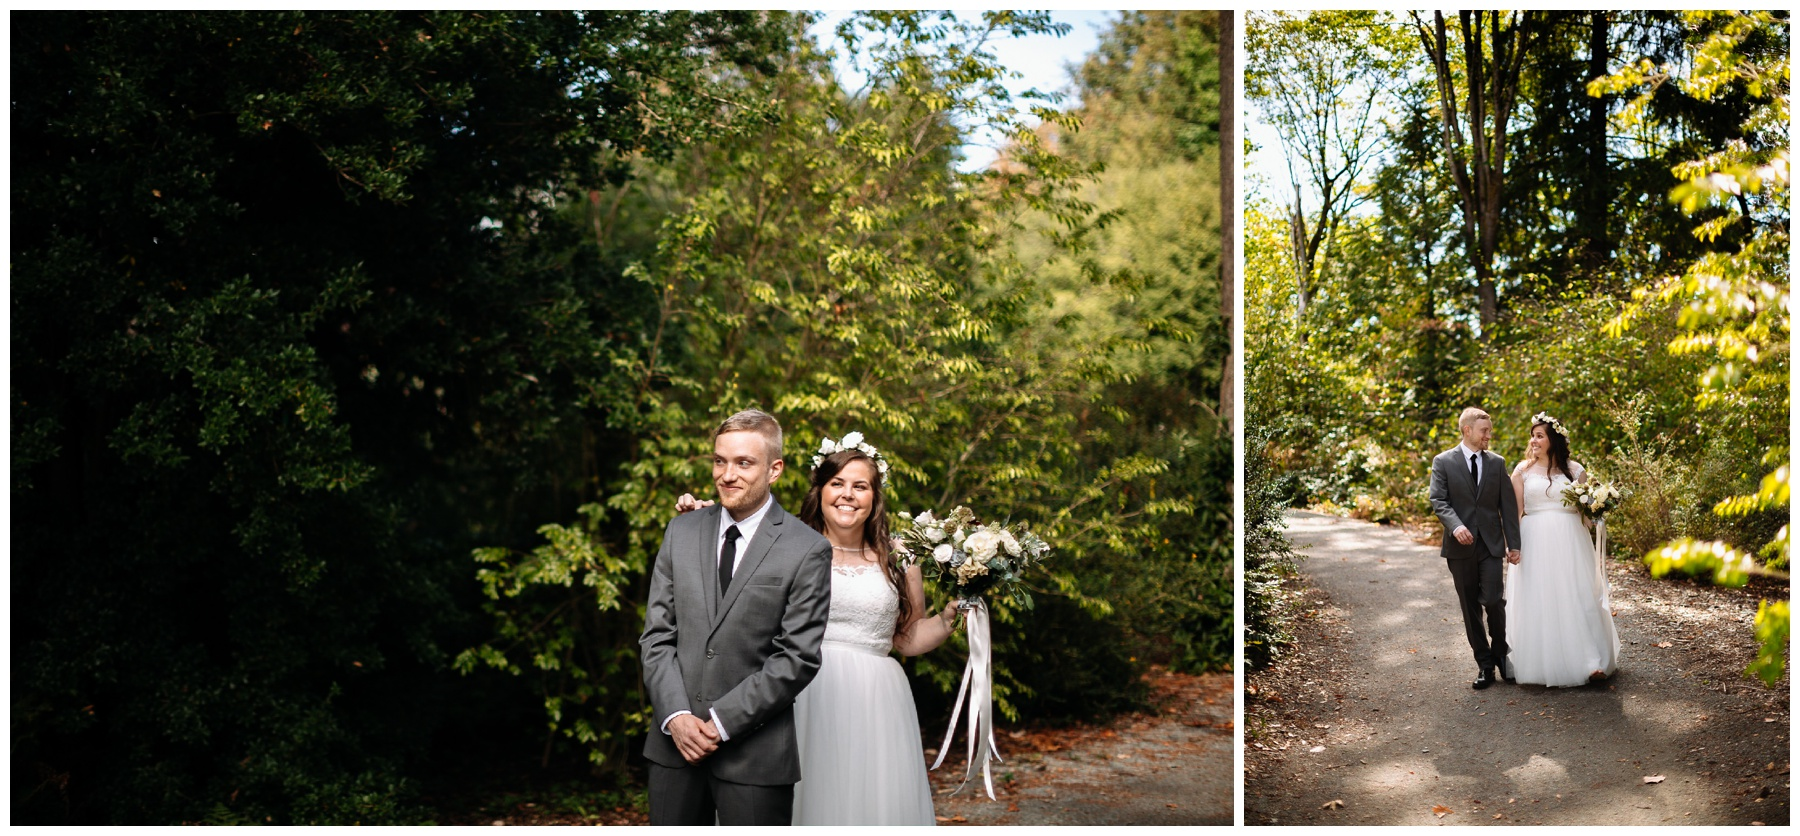 first look washington park arboretum wedding